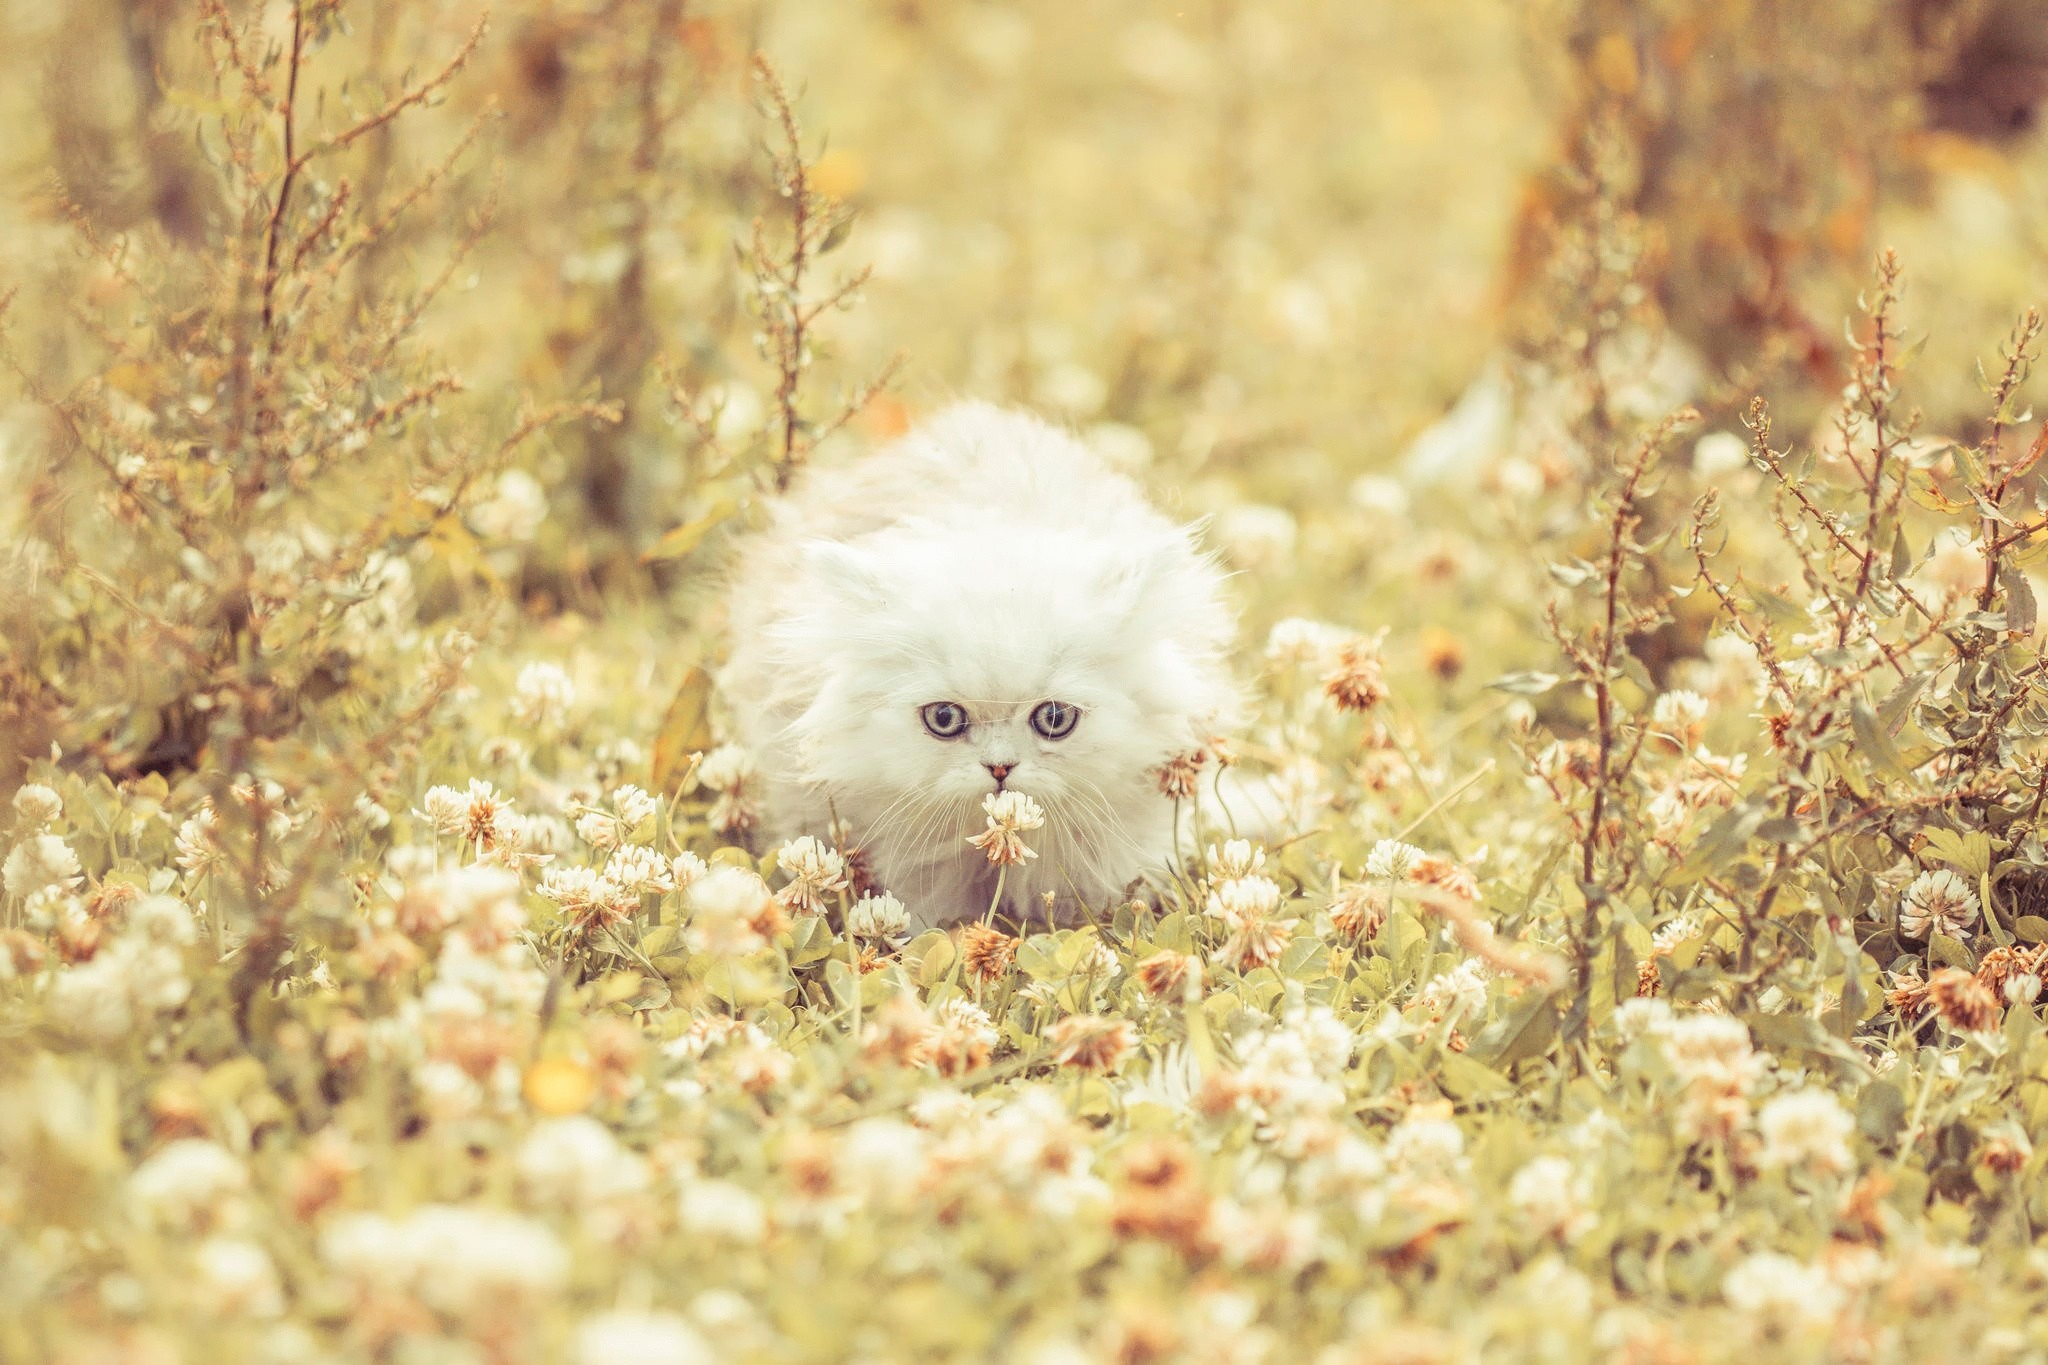 141606 Screensavers and Wallpapers Kitten for phone. Download Animals, Flowers, Grass, Fluffy, Kitty, Kitten, Run Away, Run pictures for free